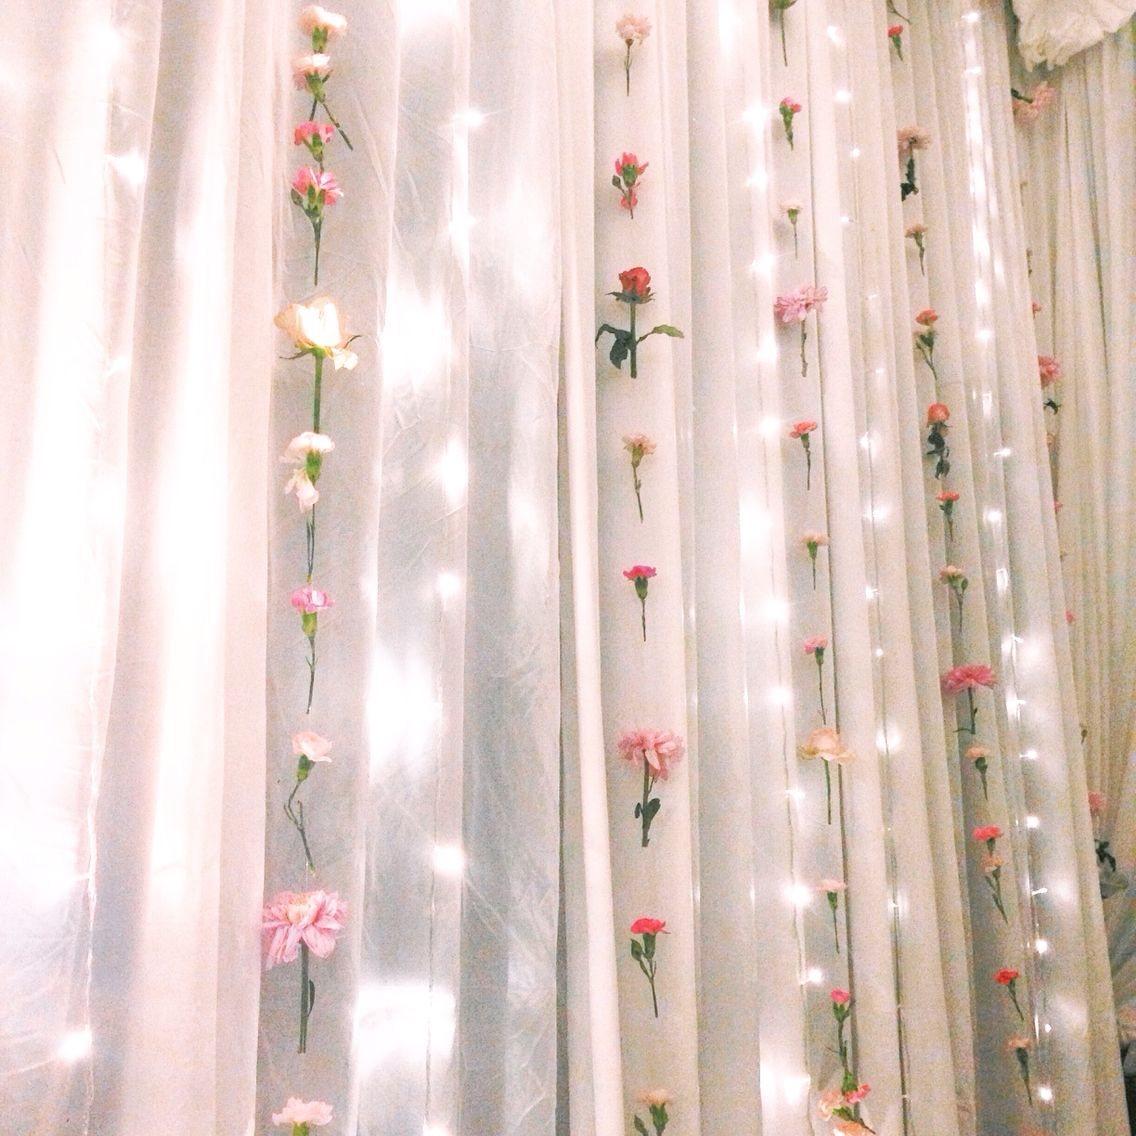 Wall Of Fresh Flower And Fairy Light For Rustic Wedding Fairy Light Curtain Fairy Lights On Wall Fairy Lights Bedroom